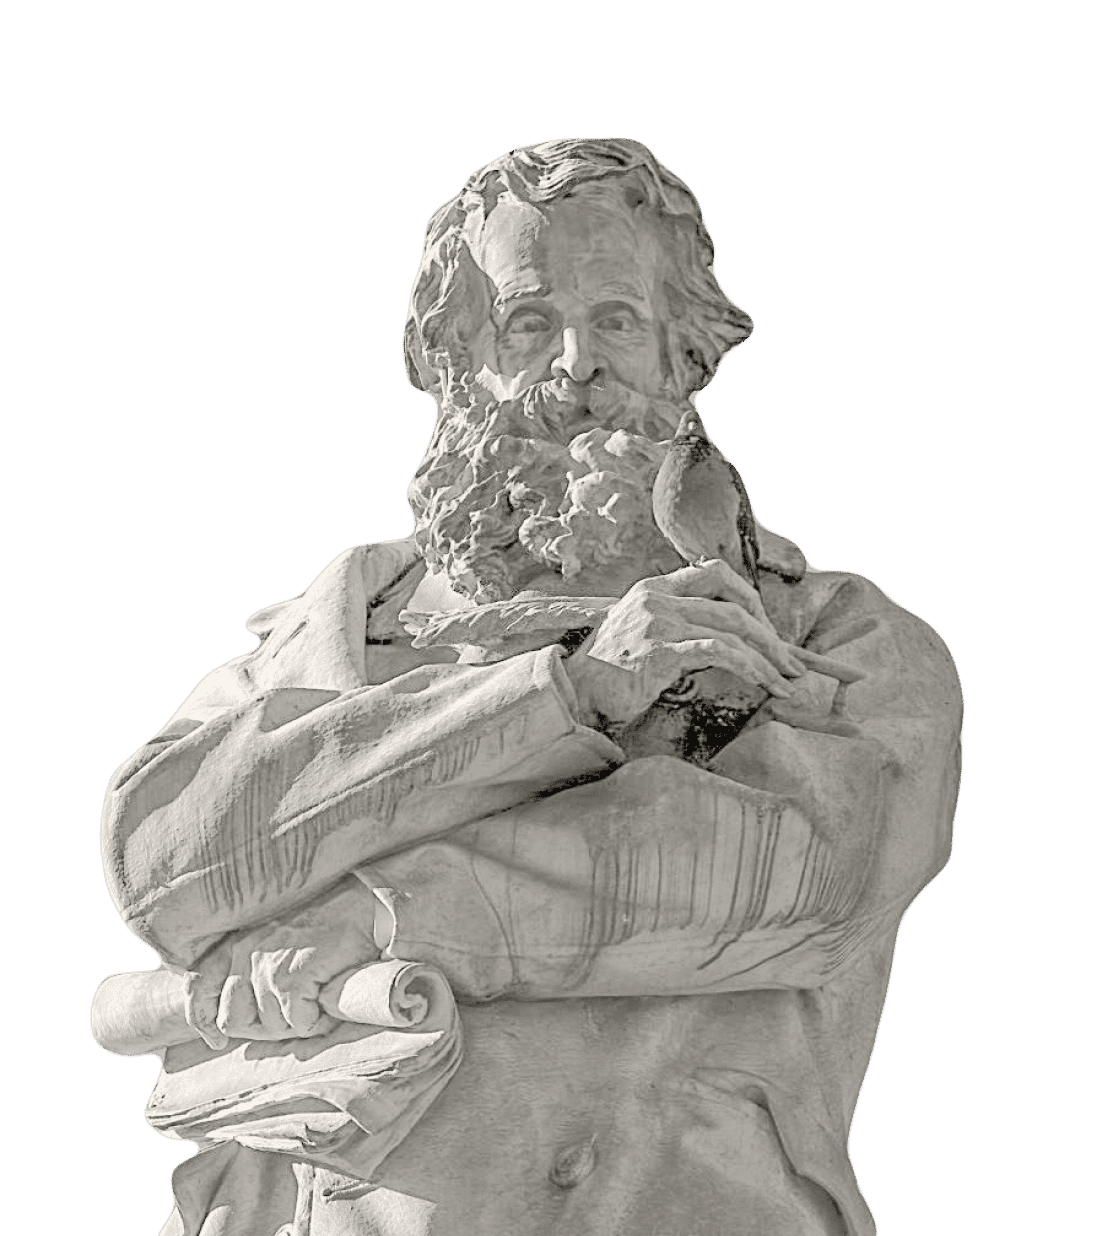 Statue of the great Italian linguist and lexicographer Nicolo Tommaseo erected in the historic Campo Santo Stefano